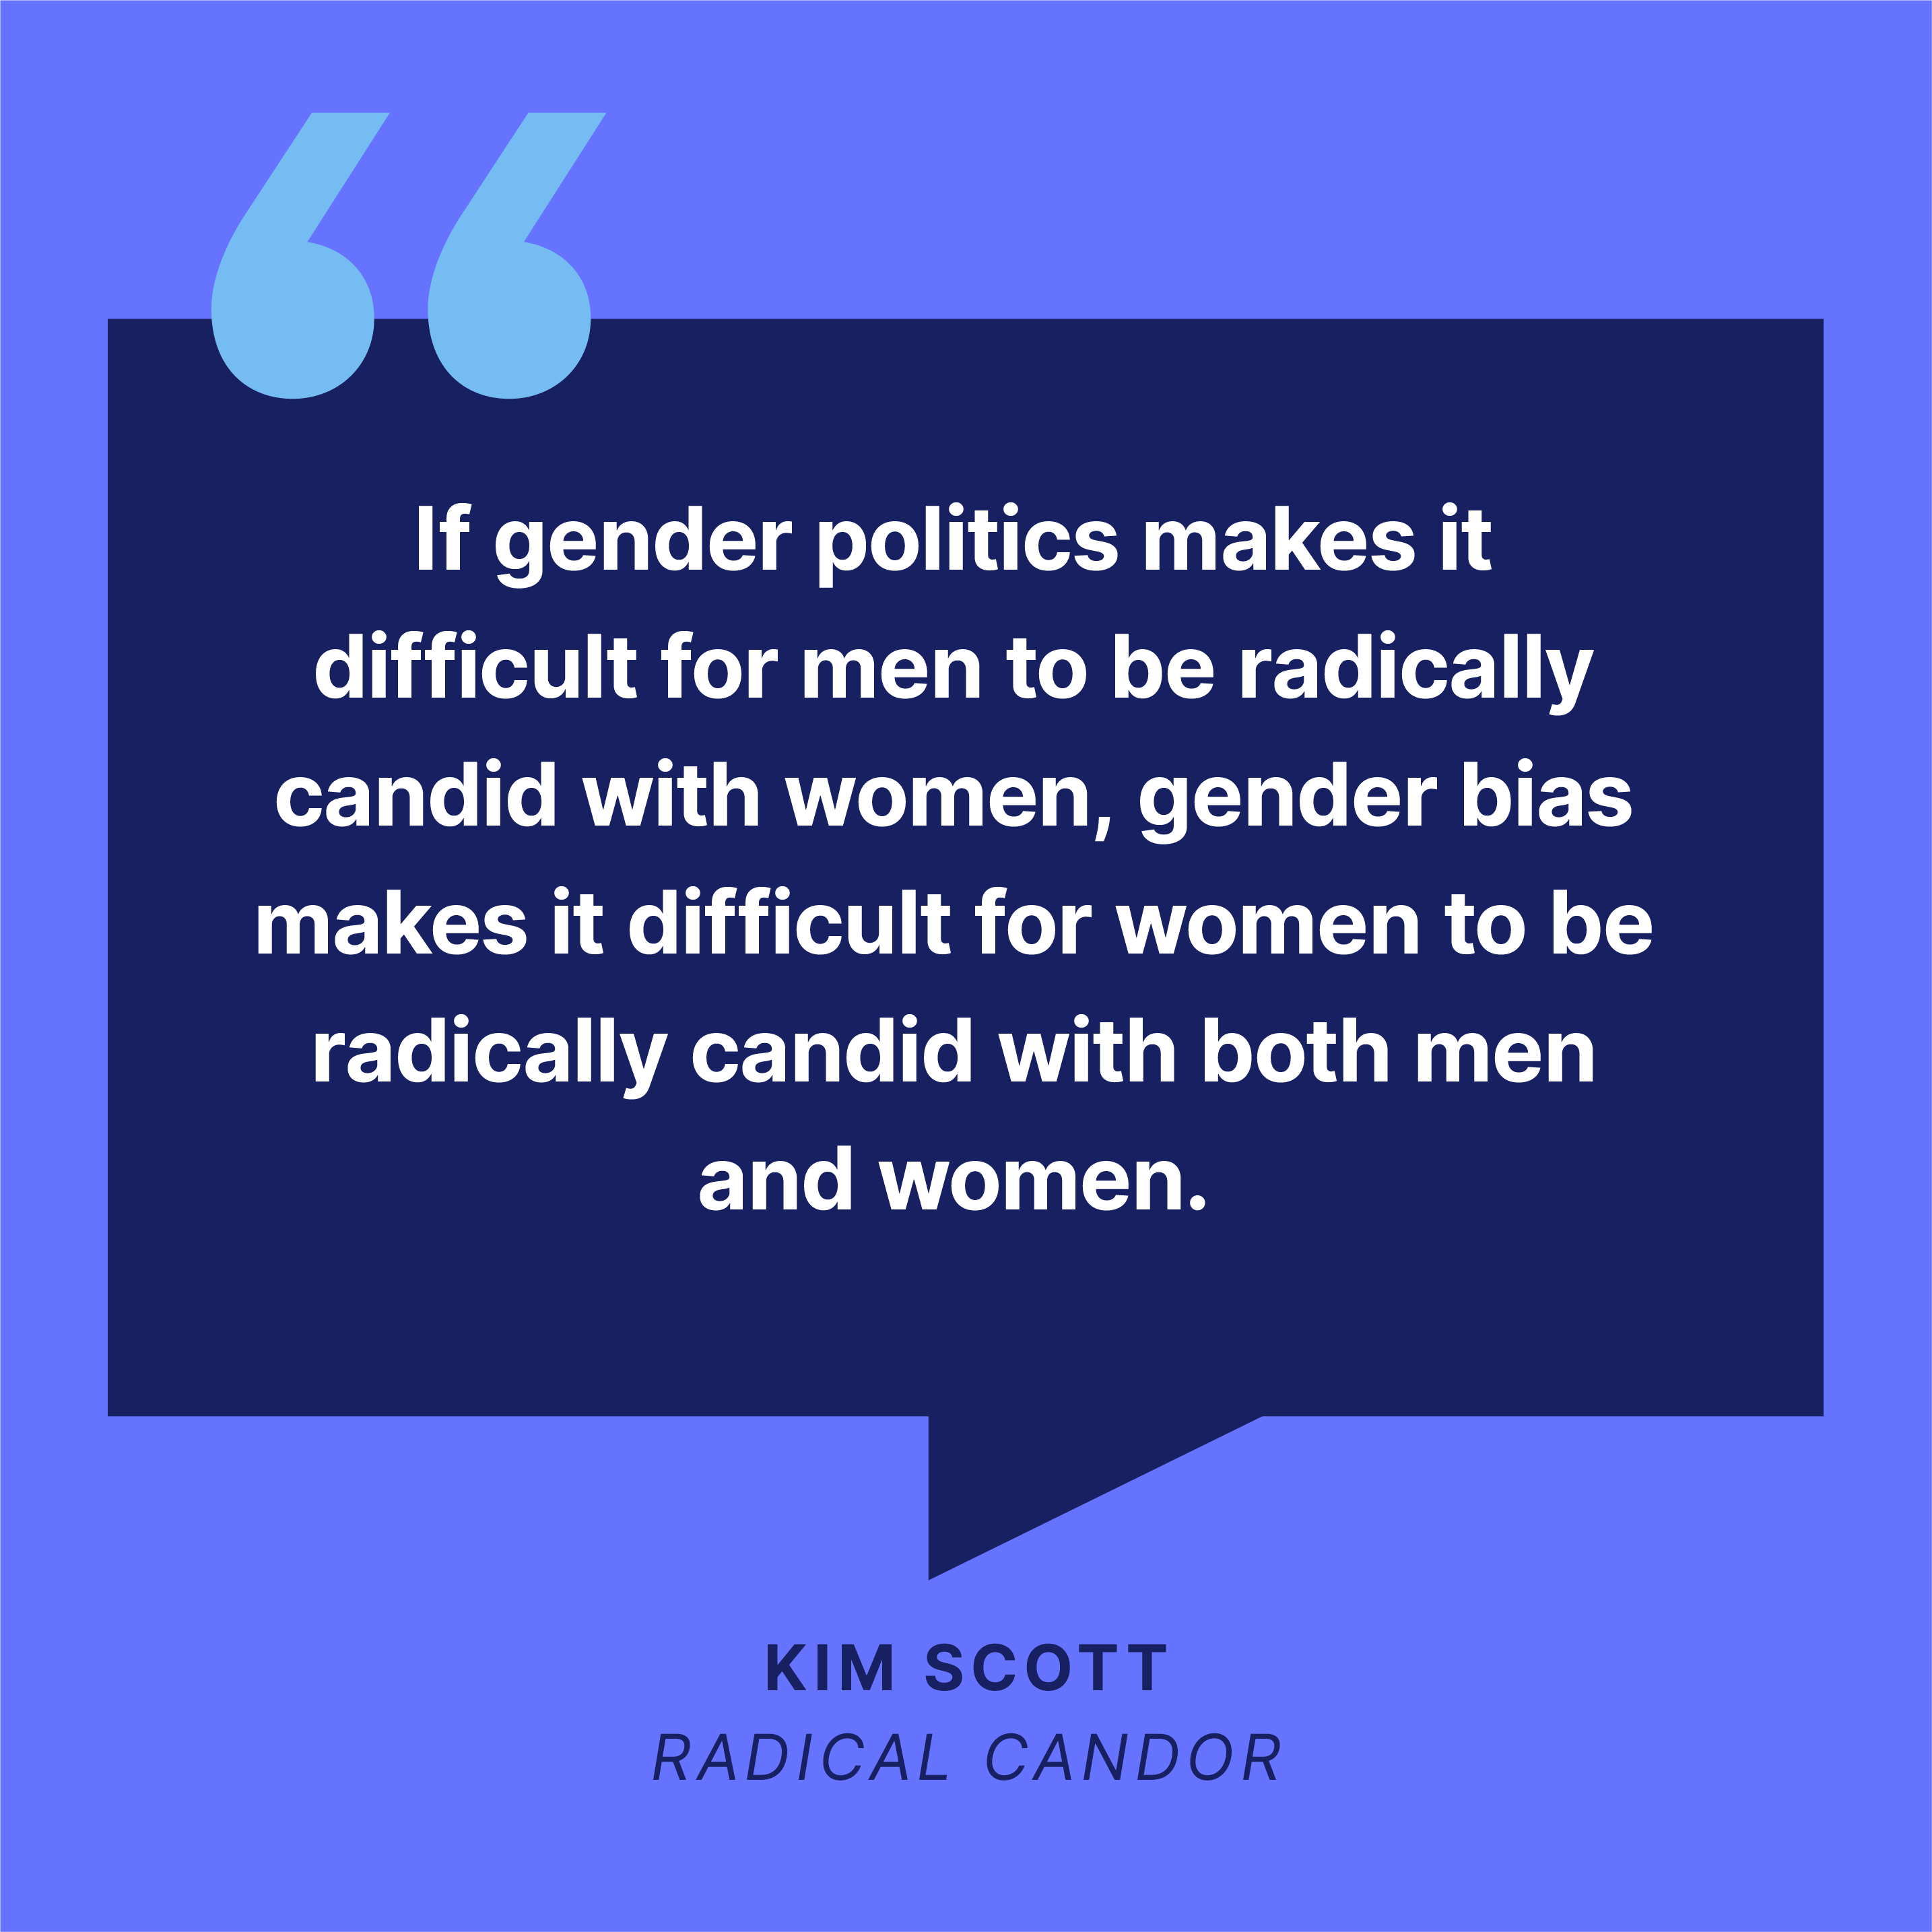 Gender bias makes it difficult for women to be radically candid with both men and women says Kim Scott.